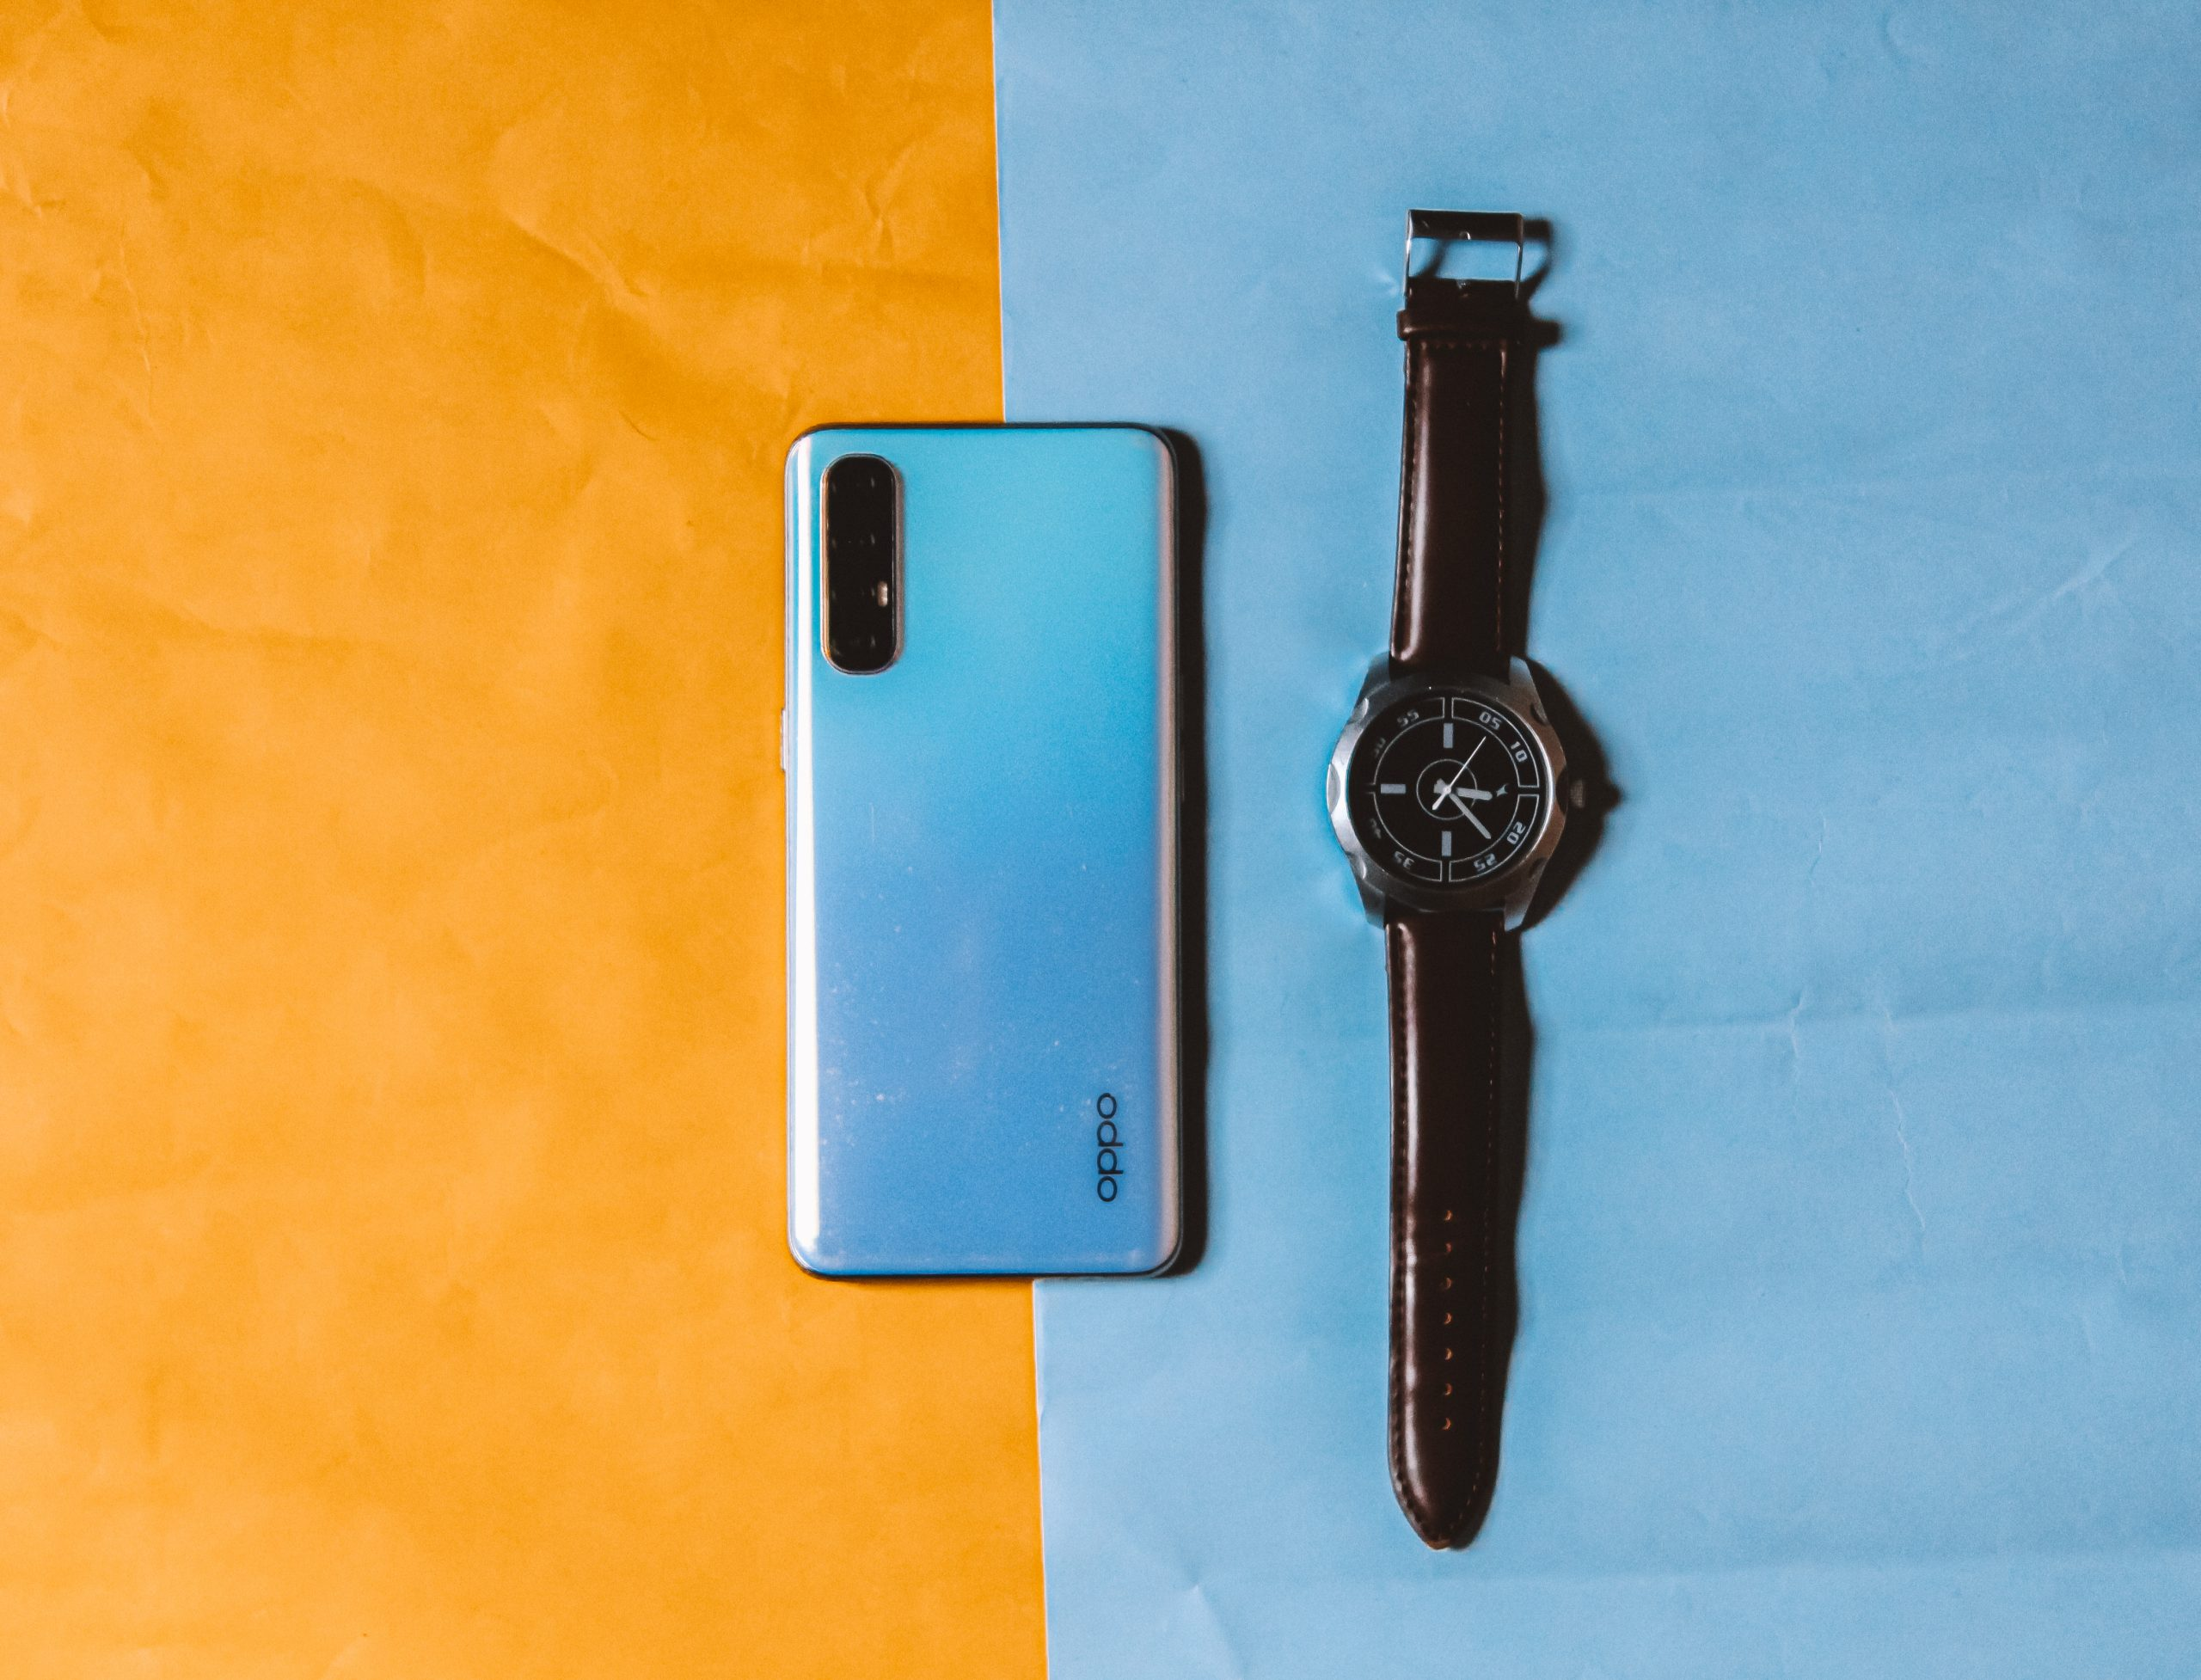 Oppo smartphone and wrist watch